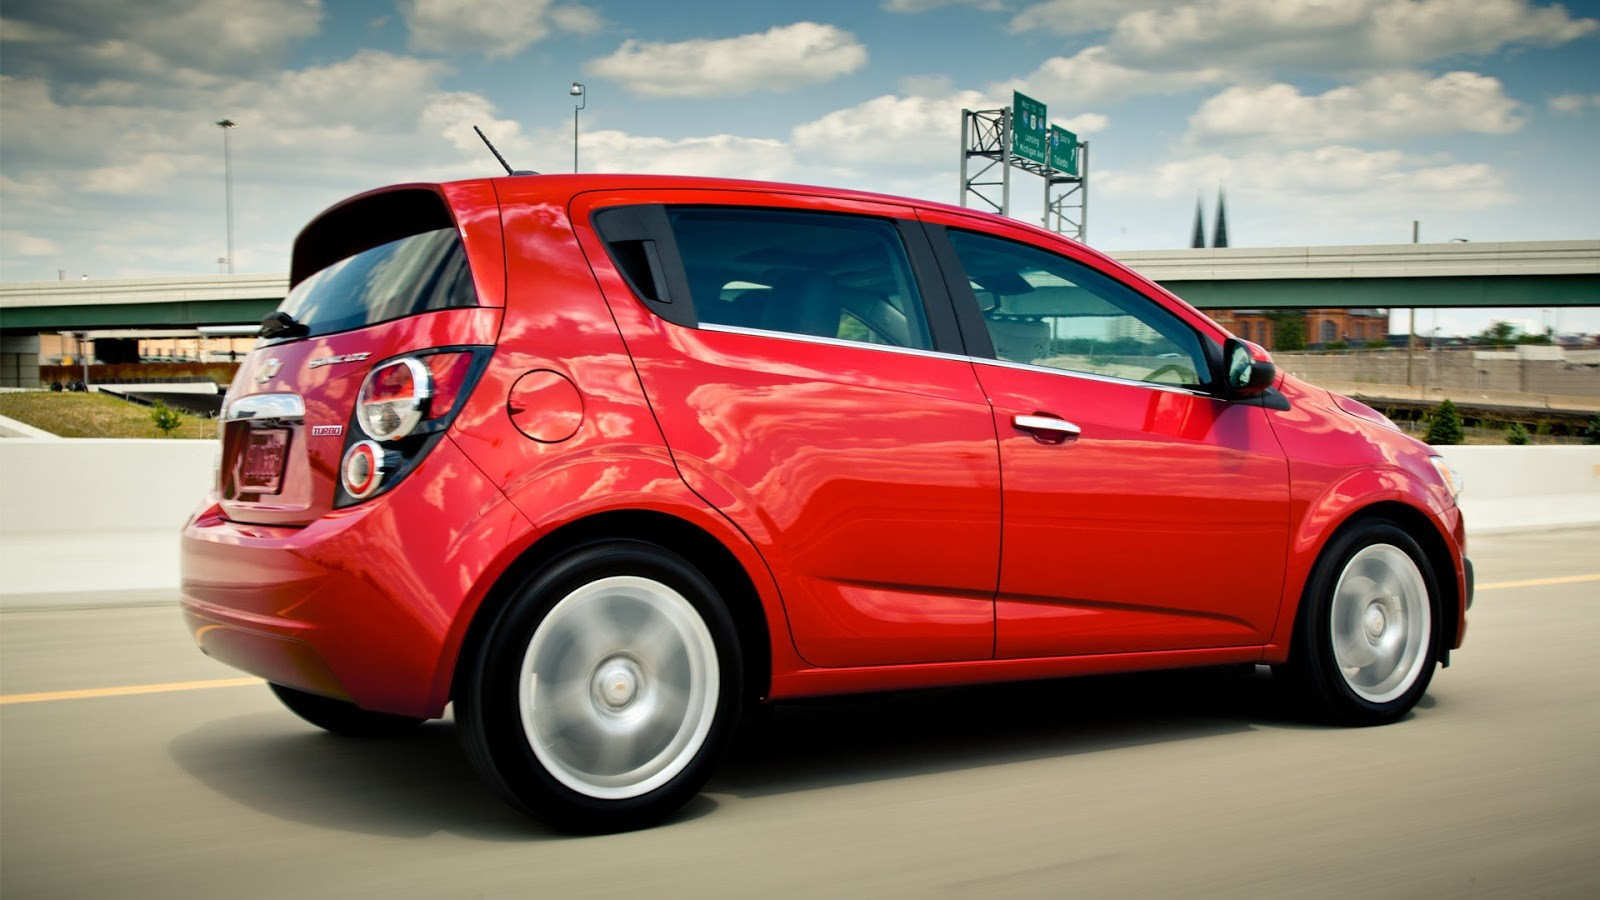 2015 Chevy Sonic KBB review